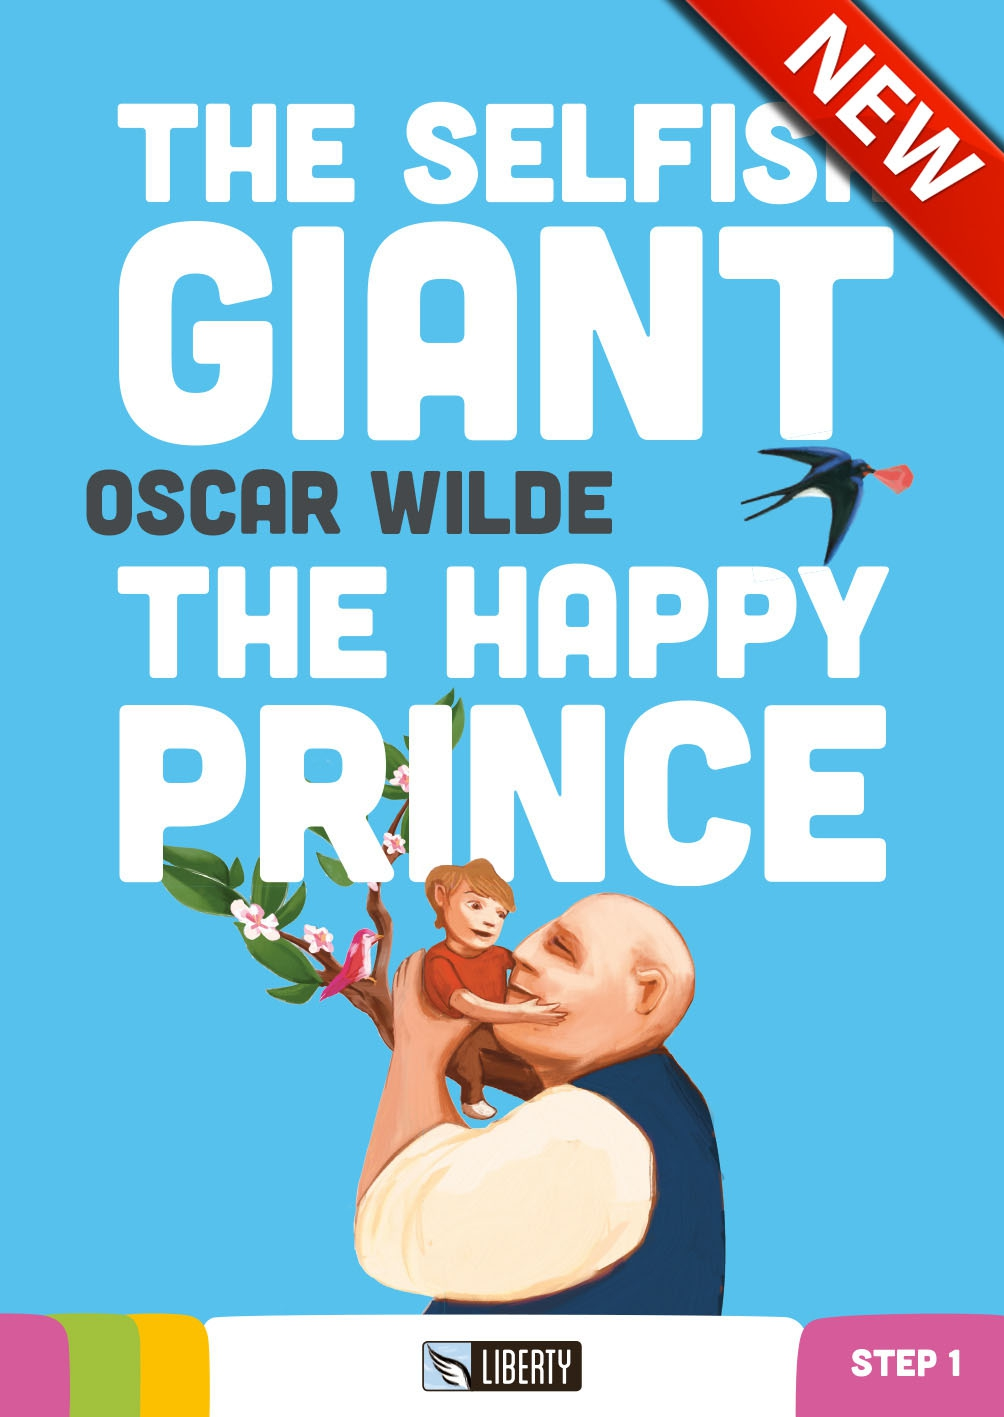 summary the selfish giant essay June 21, 2015 'the selfish giant' by oscar wilde has a history rooted in christianity there are ample journals, books, and even some occasional movies that demonstrate wilde's work as a christian allegory[1.